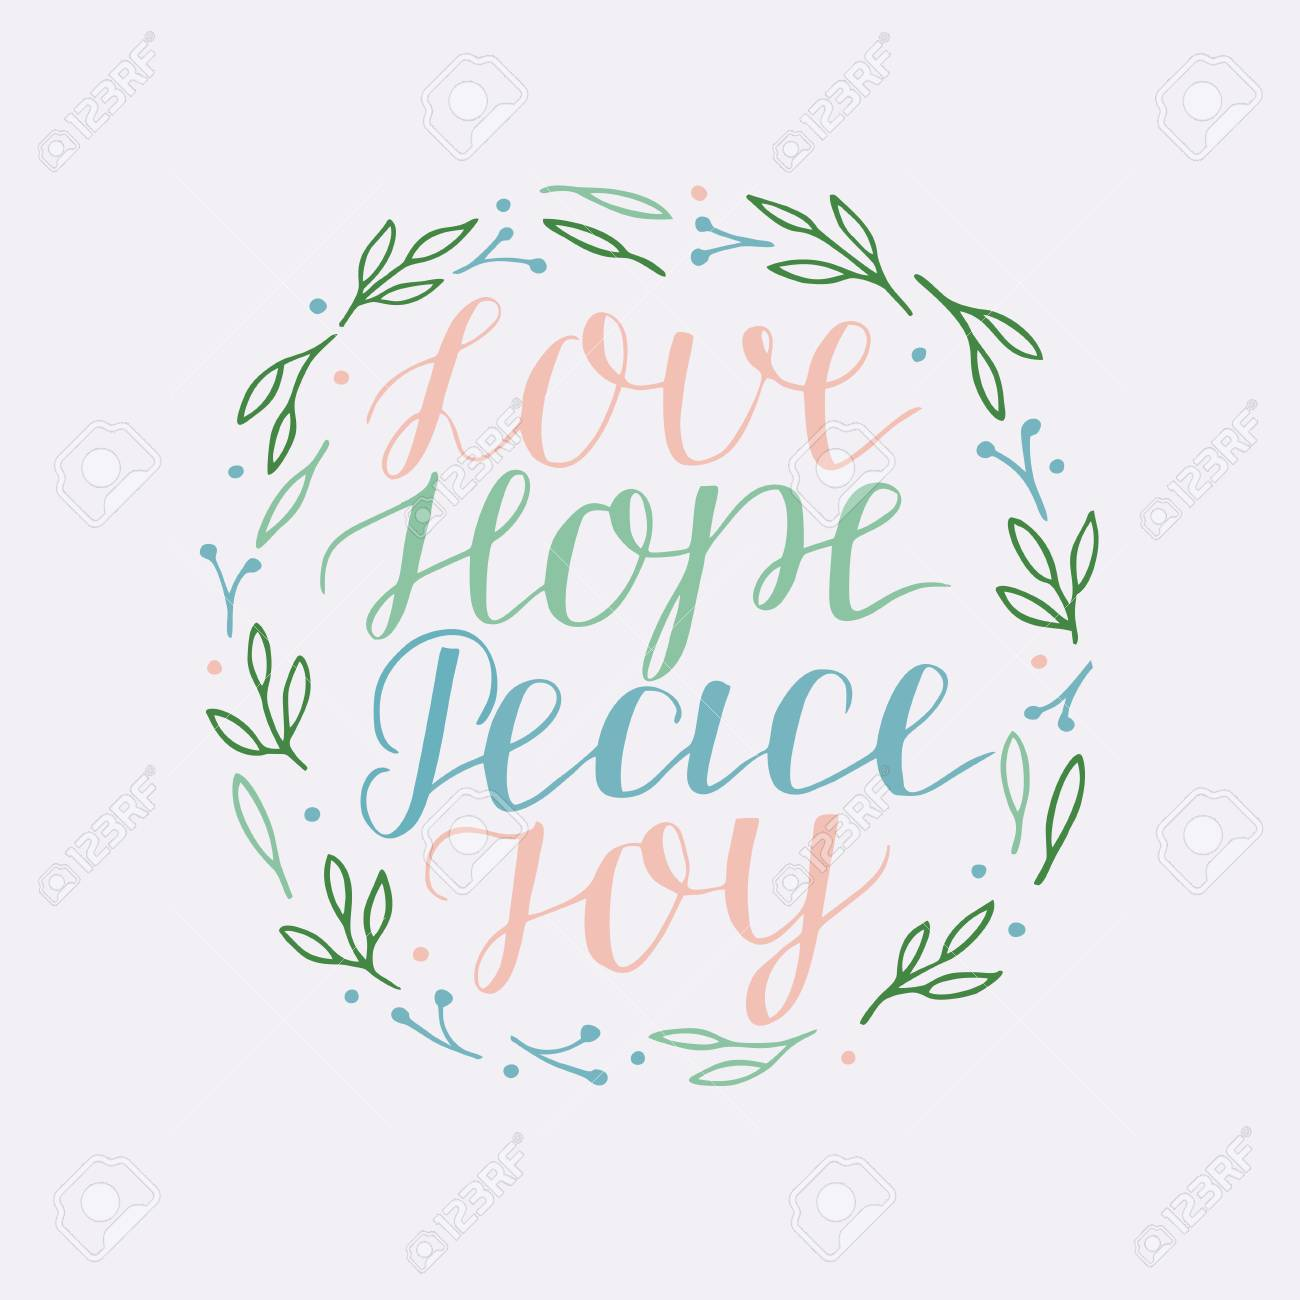 Hand Lettering With Inspirational Quotes Love Hope Peace Joy Royalty Free Cliparts Vectors And Stock Illustration Image 122677737